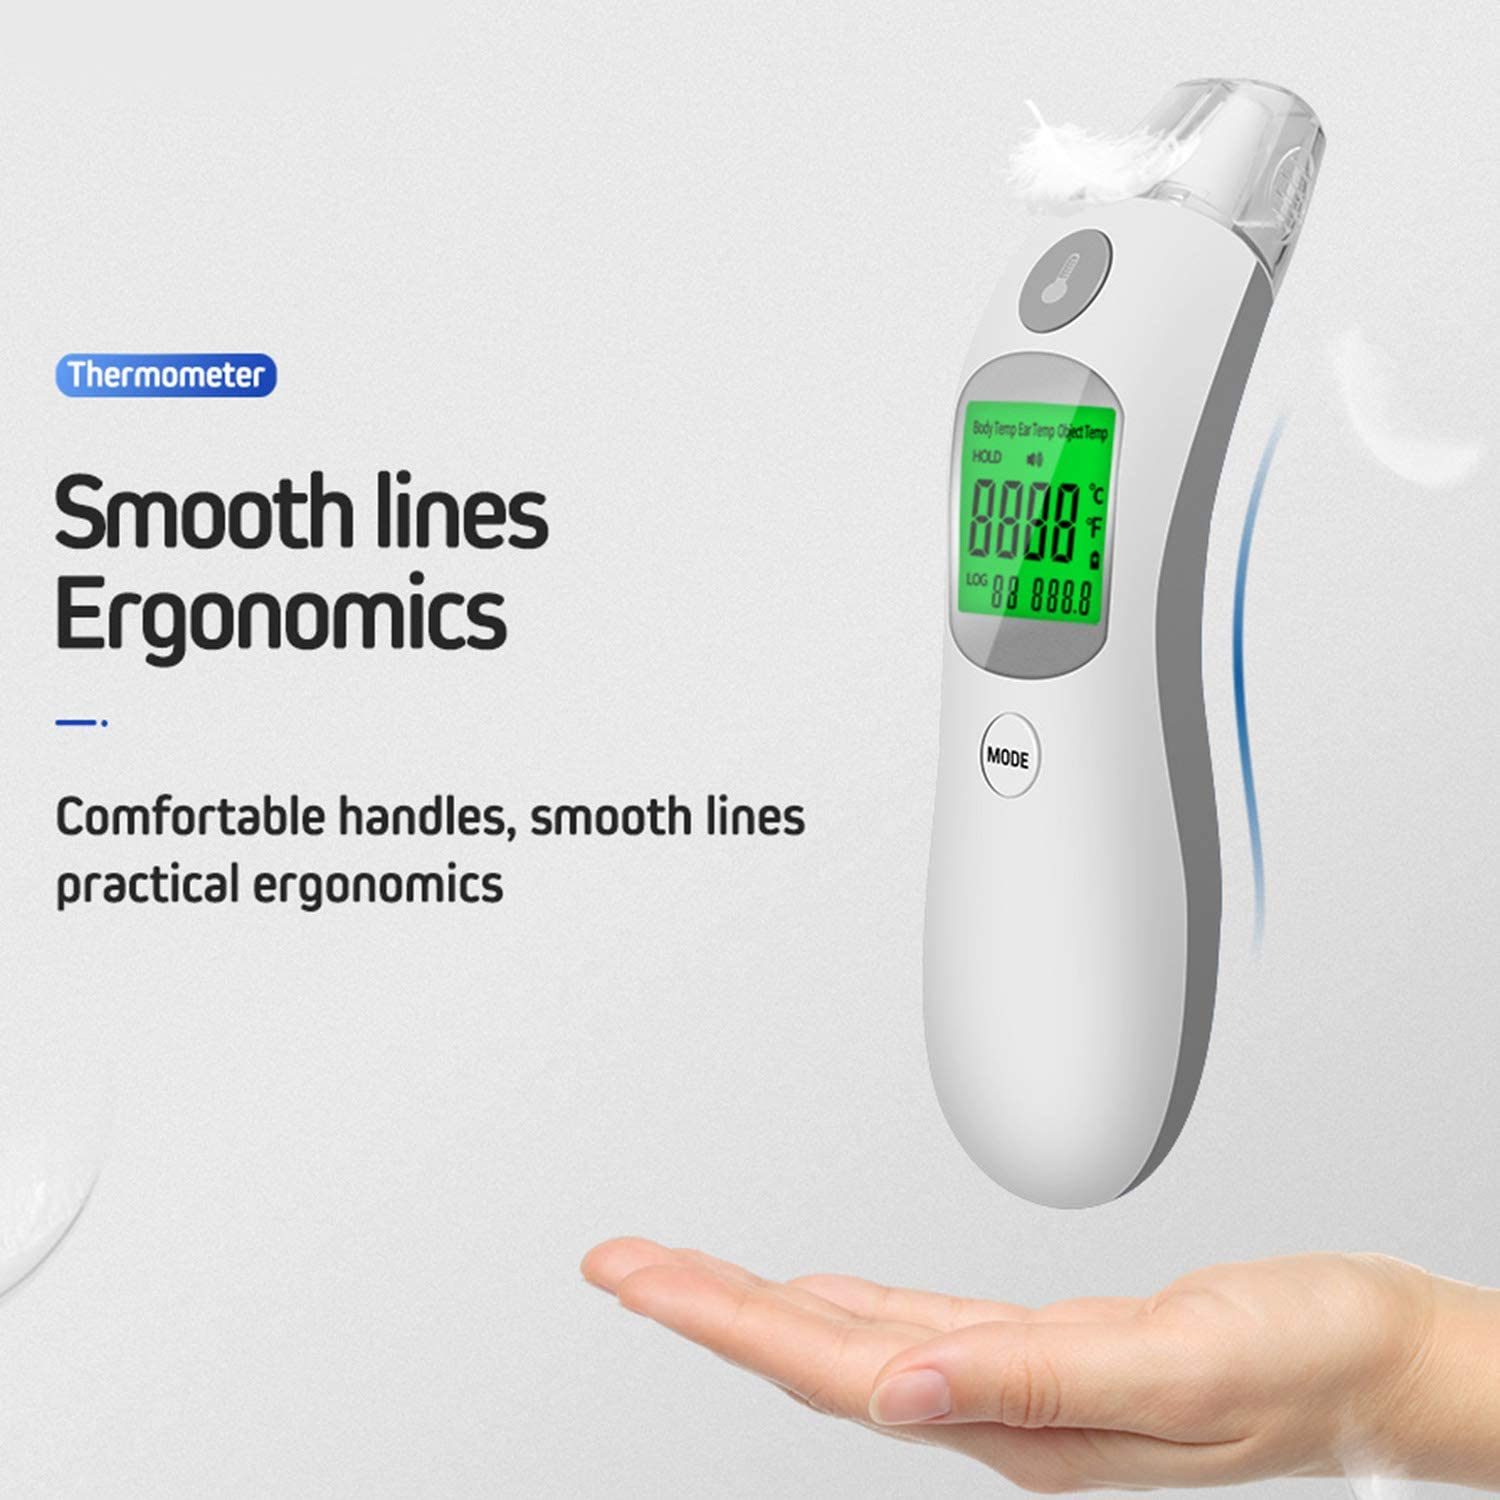 Portable Digital IR Infrared Ear Forehead Body Thermometer with Large LCD Display Screen for Adults Children Infants Toddlers Boys Girls Gray